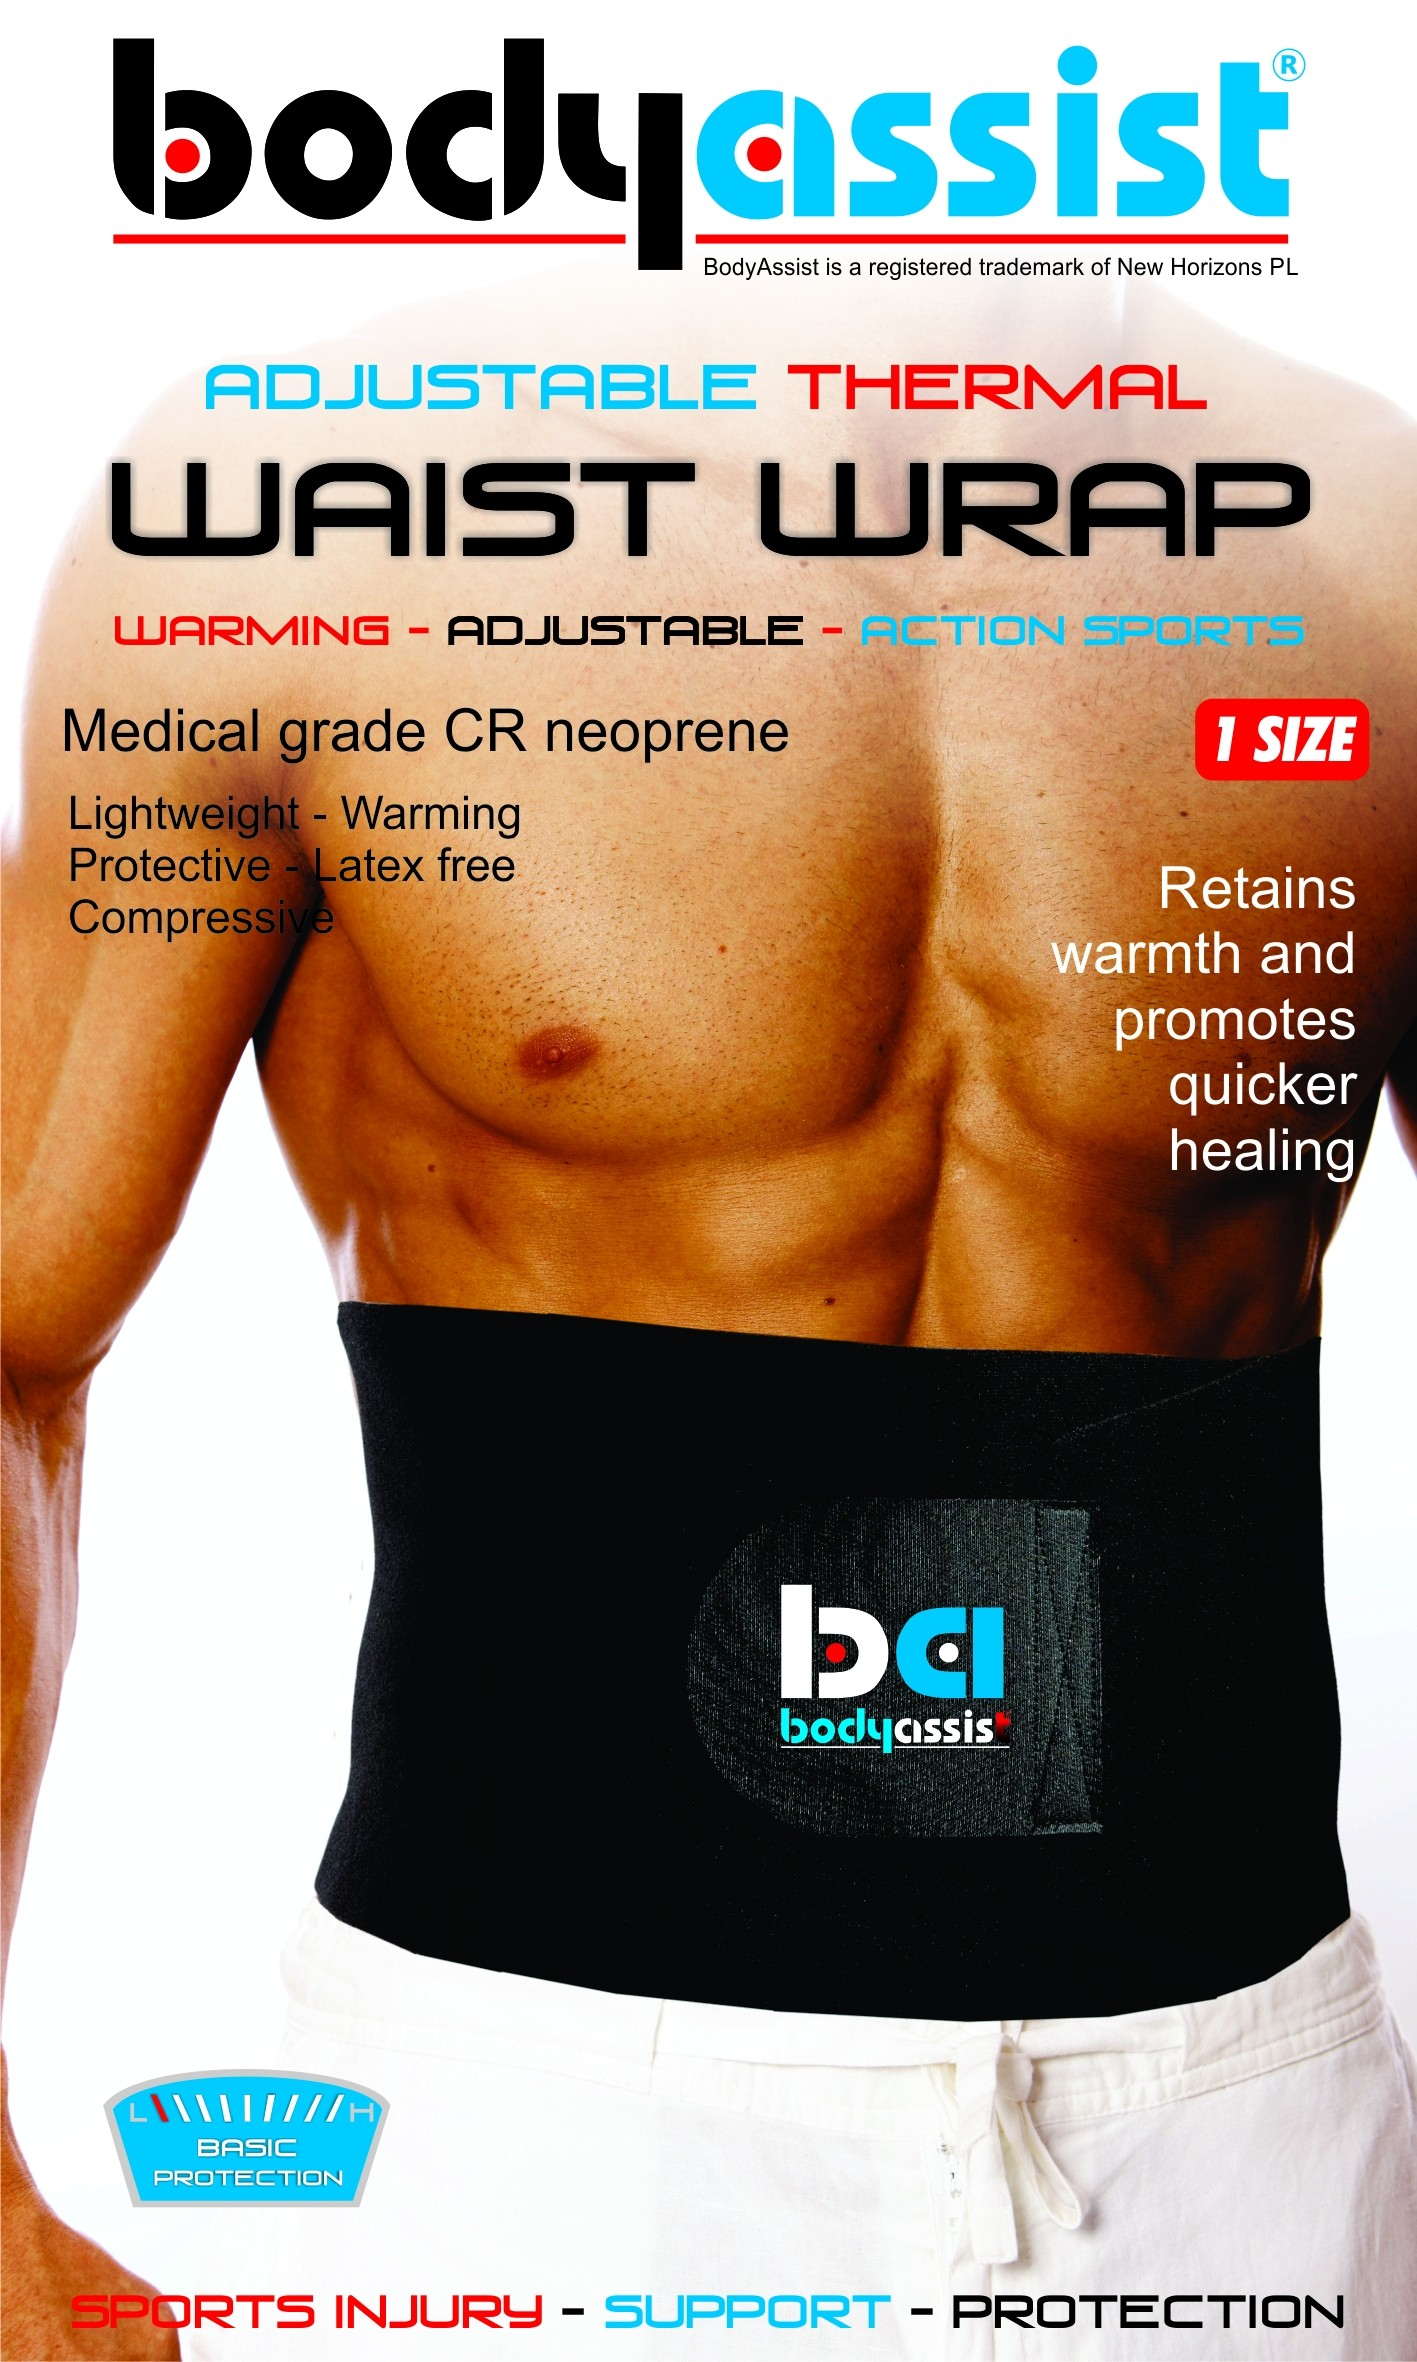 Bodyassist Thermal Waist Belt Wrap - one size